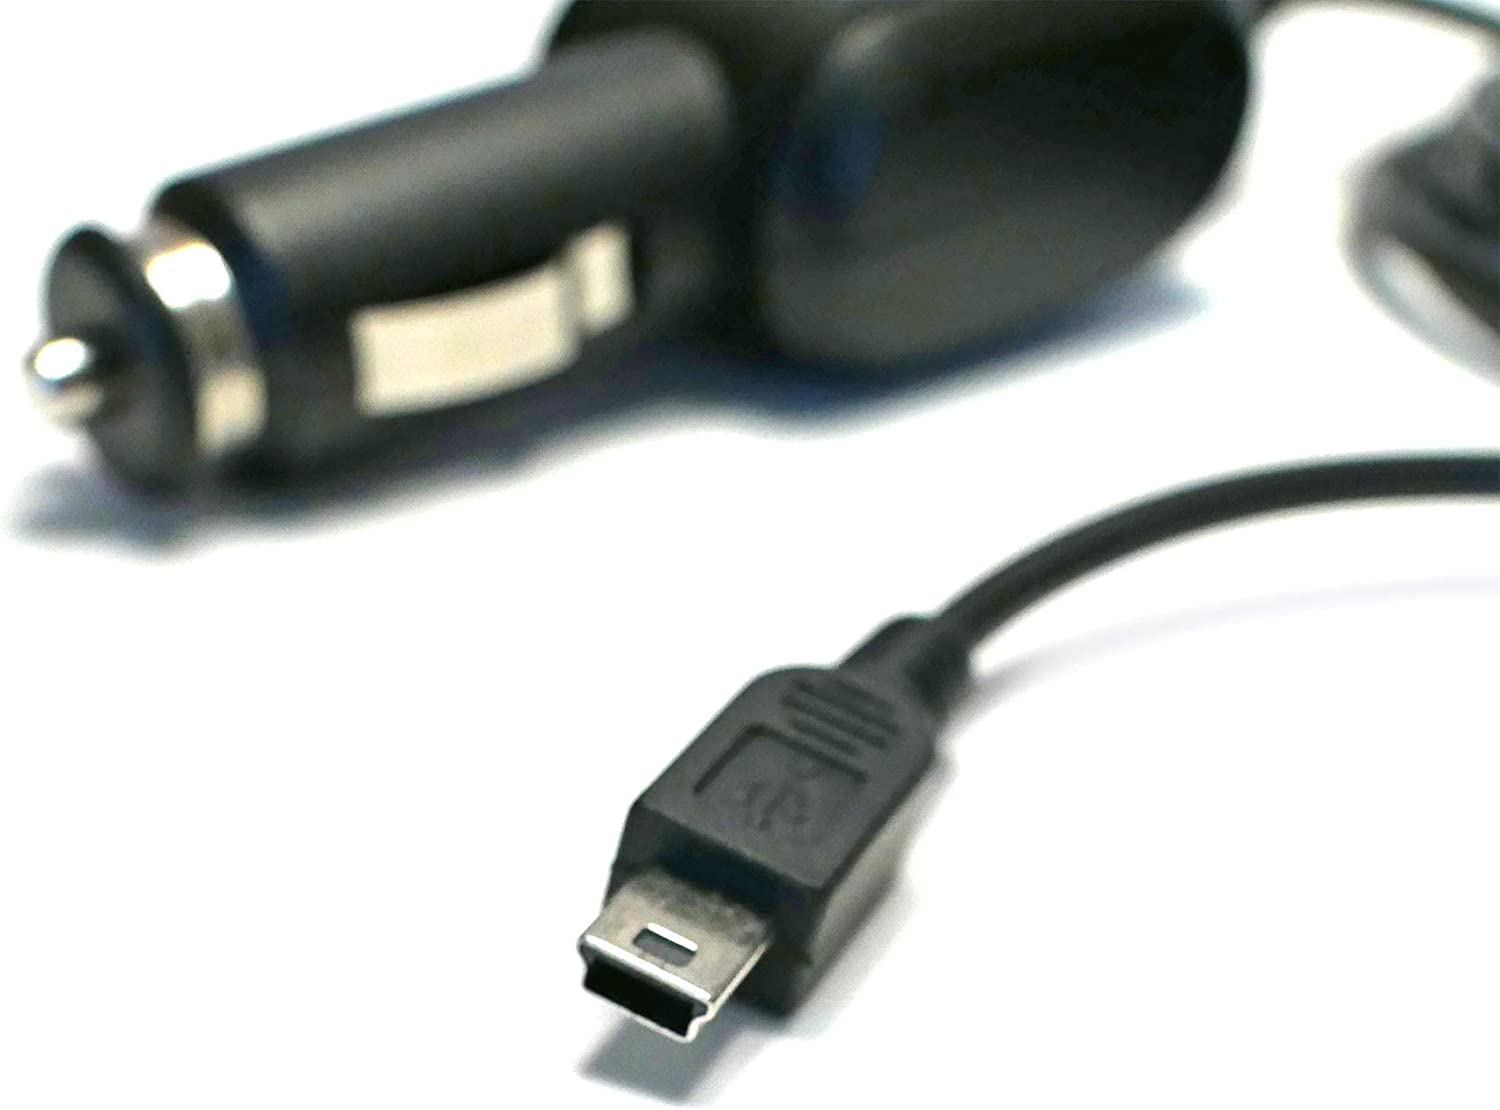 Suitable for Use with Aiptex Car Camcorder X-Mini Car Camcorder X3 /& Car Camcorder DURAGADGET Pink Mini USB Cable